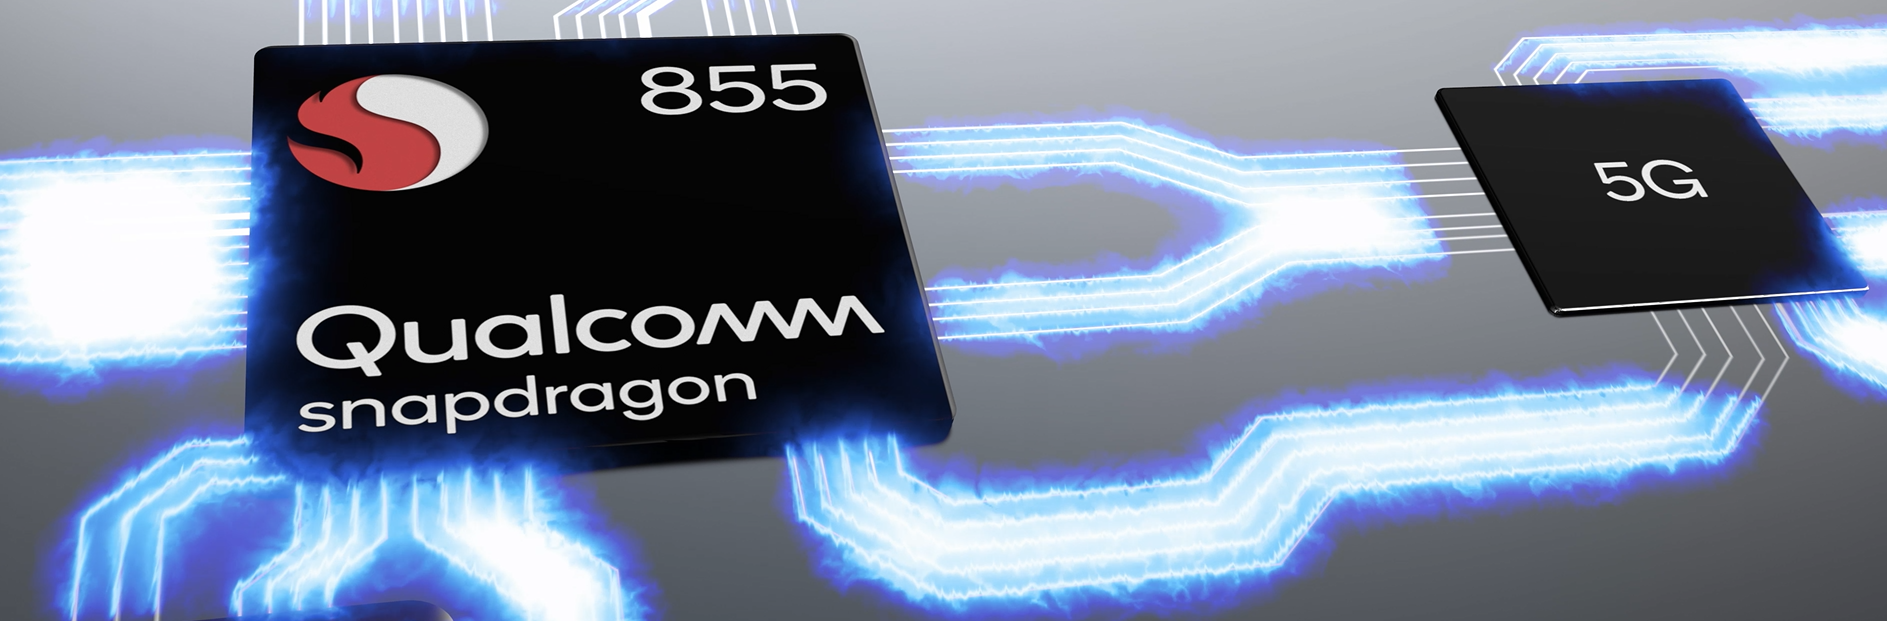 Enlarge / 5G requires a separate chip, even on Qualcomm